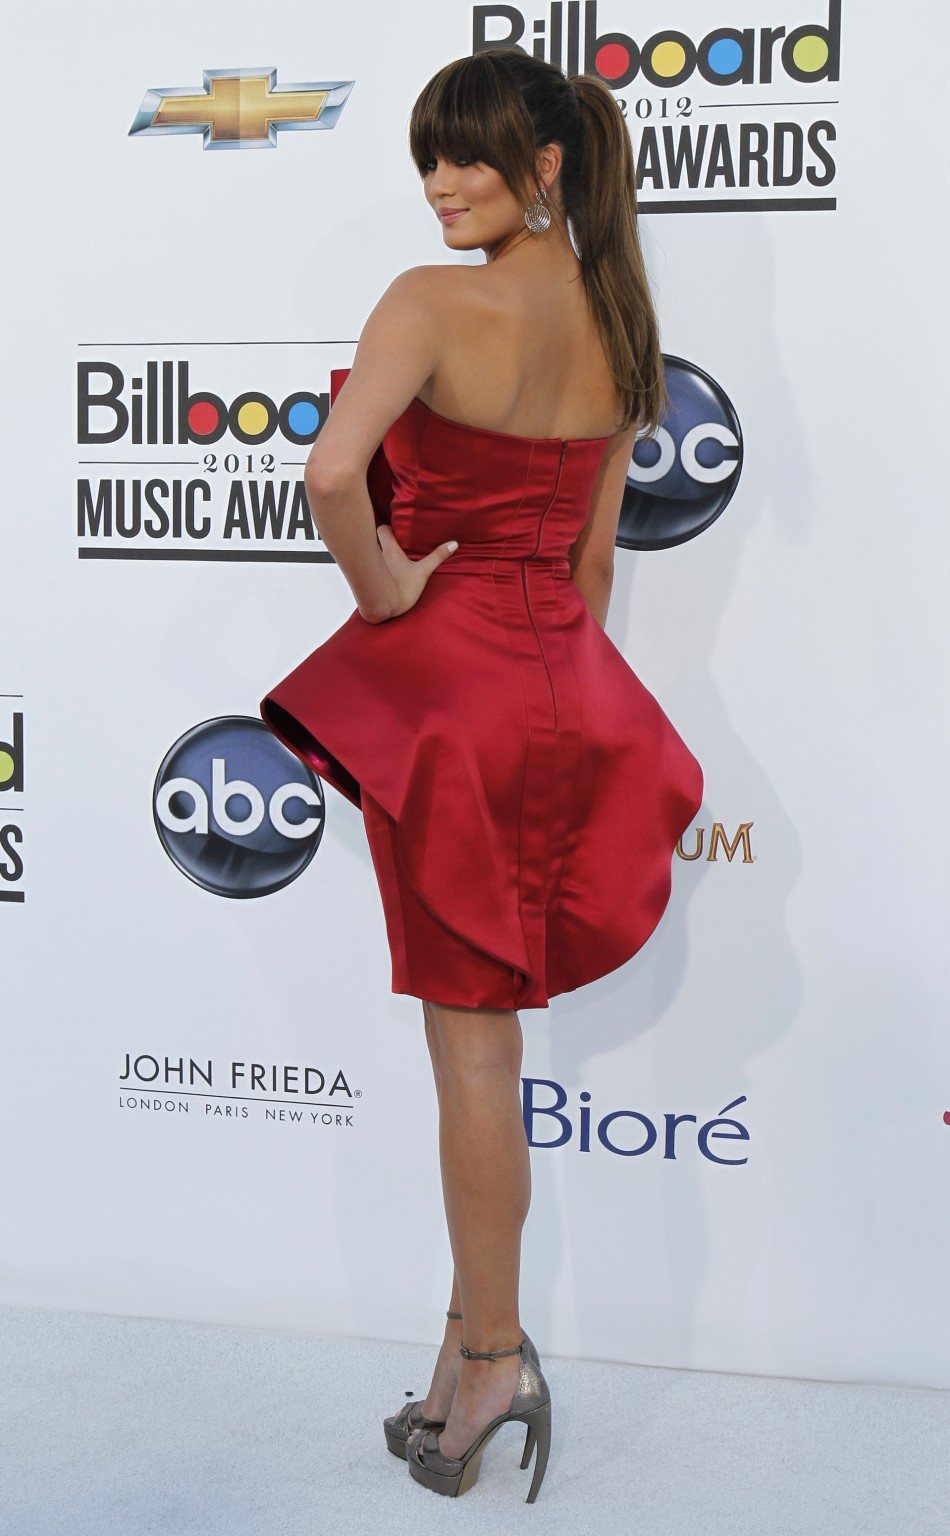 Model Chrissy Teigen arrives at the 2012 Billboard Music Awards in Las Vegas